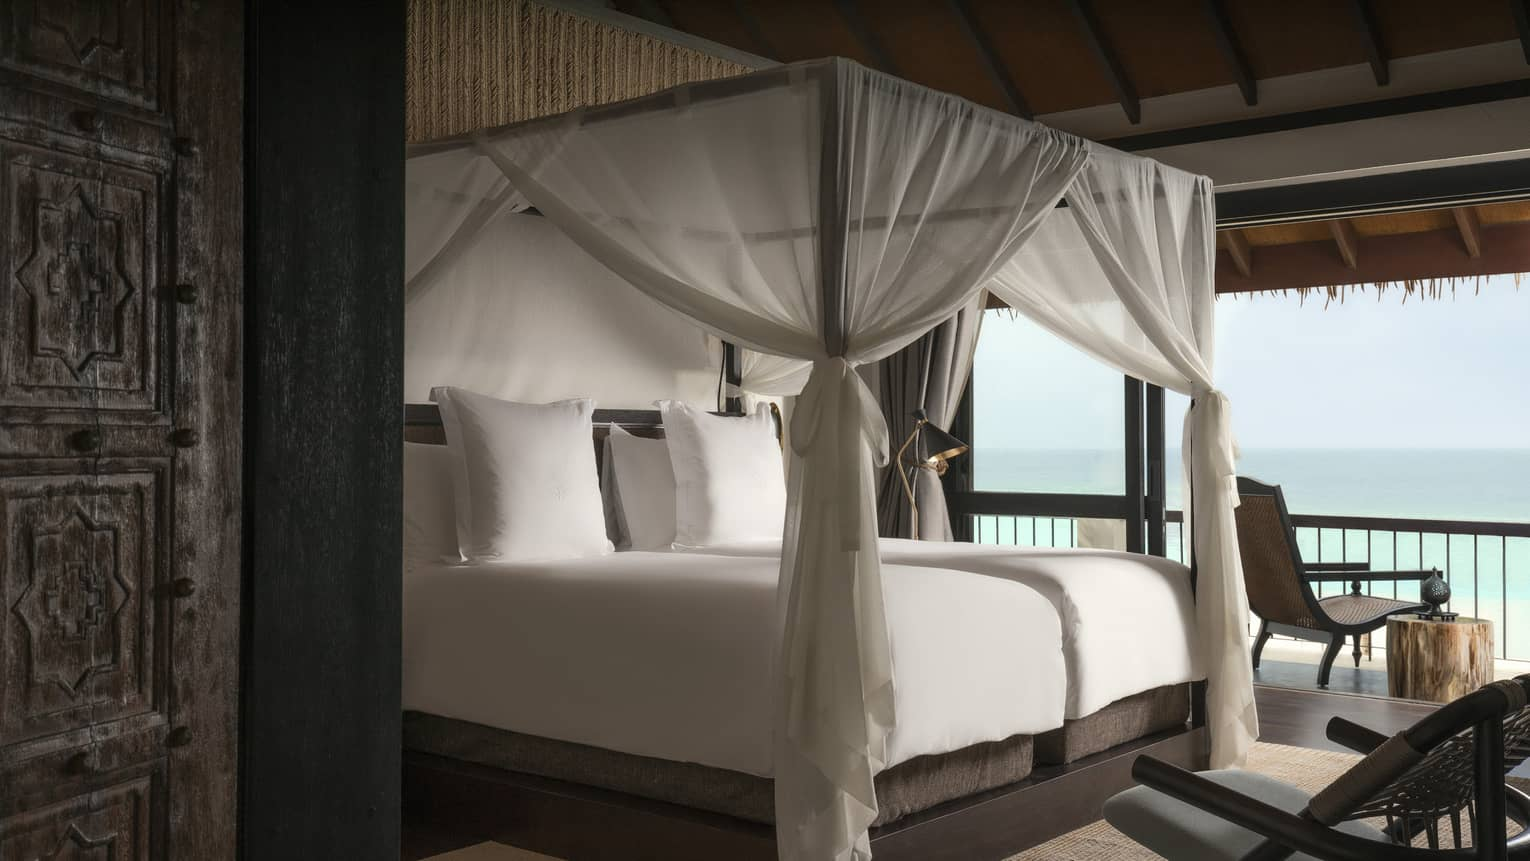 Villa poster bed with white canopy by open wall with ocean views